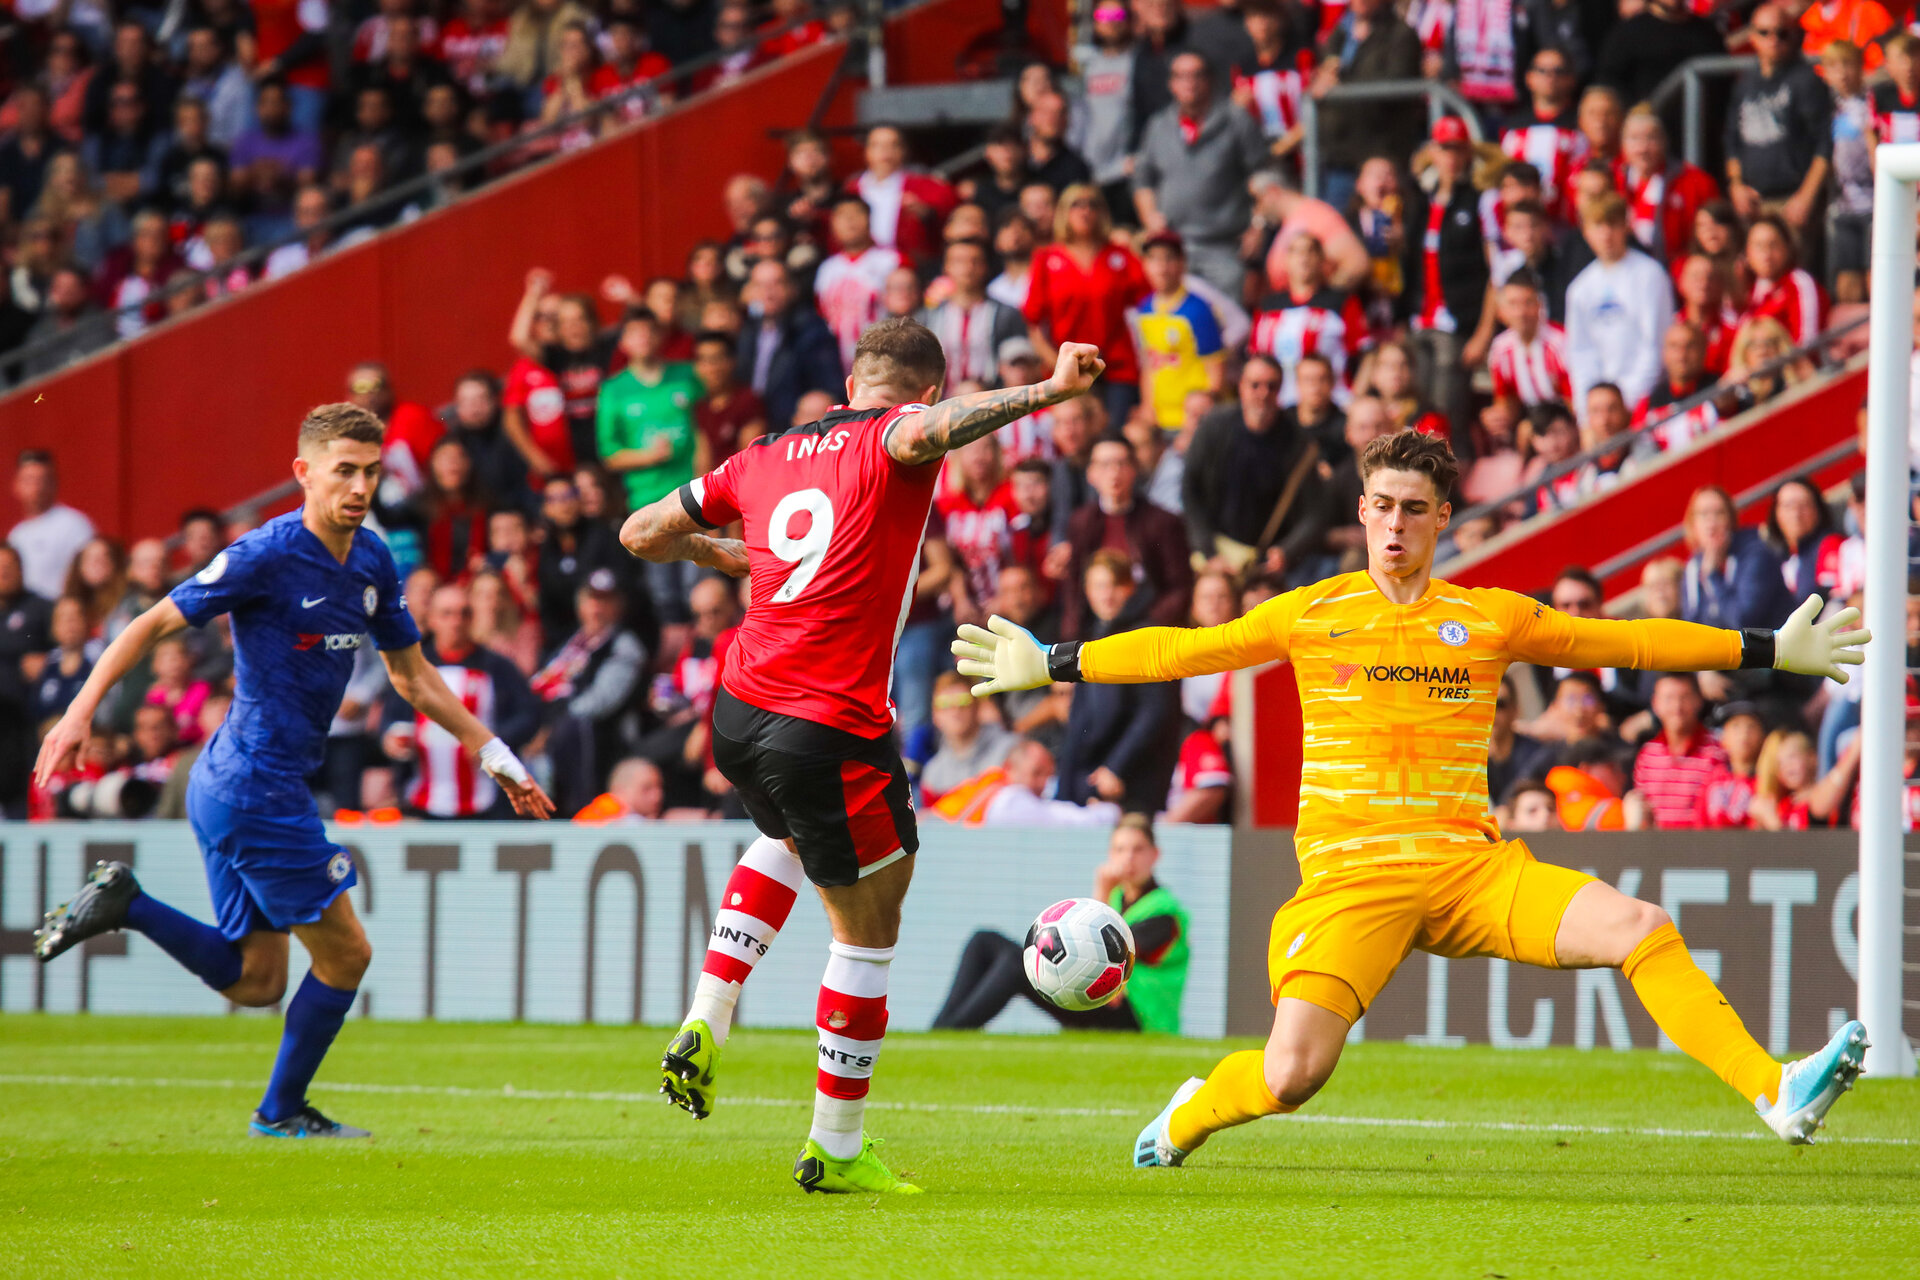 SOUTHAMPTON, ENGLAND - OCTOBER 6: Danny Ings of Southampton FC has a shot during the Premier League match between Southampton FC and Chelsea FC at St Mary's Stadium on October 6, 2019 in Southampton, England